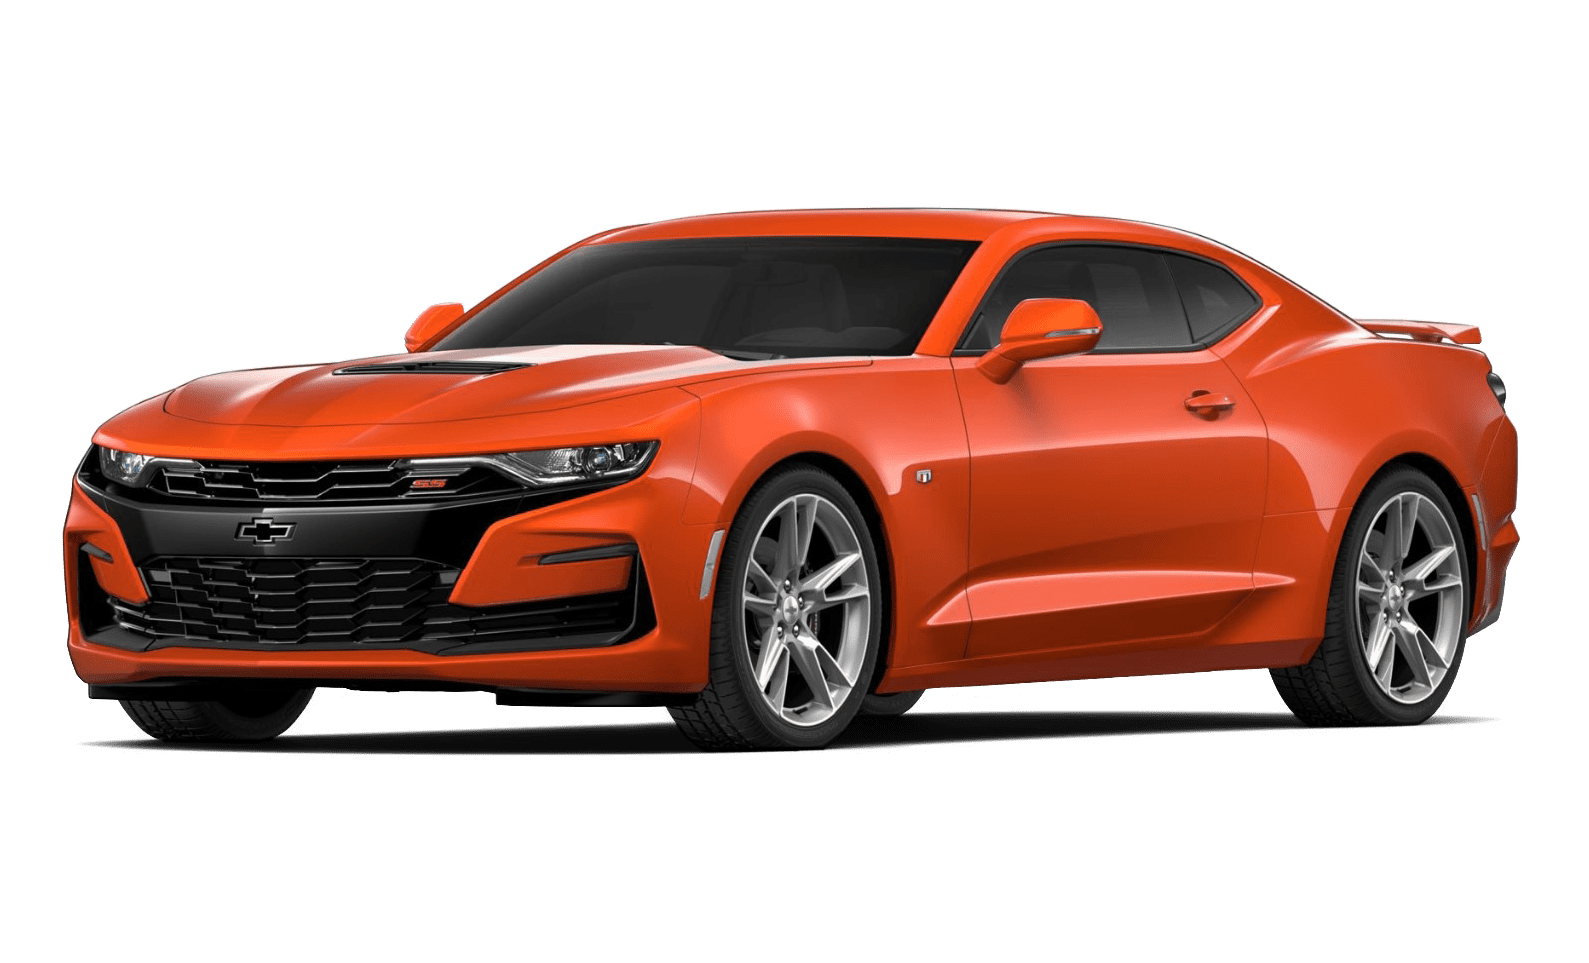 products/versions/chevrolet-camaro-coupe-laranja-1.png